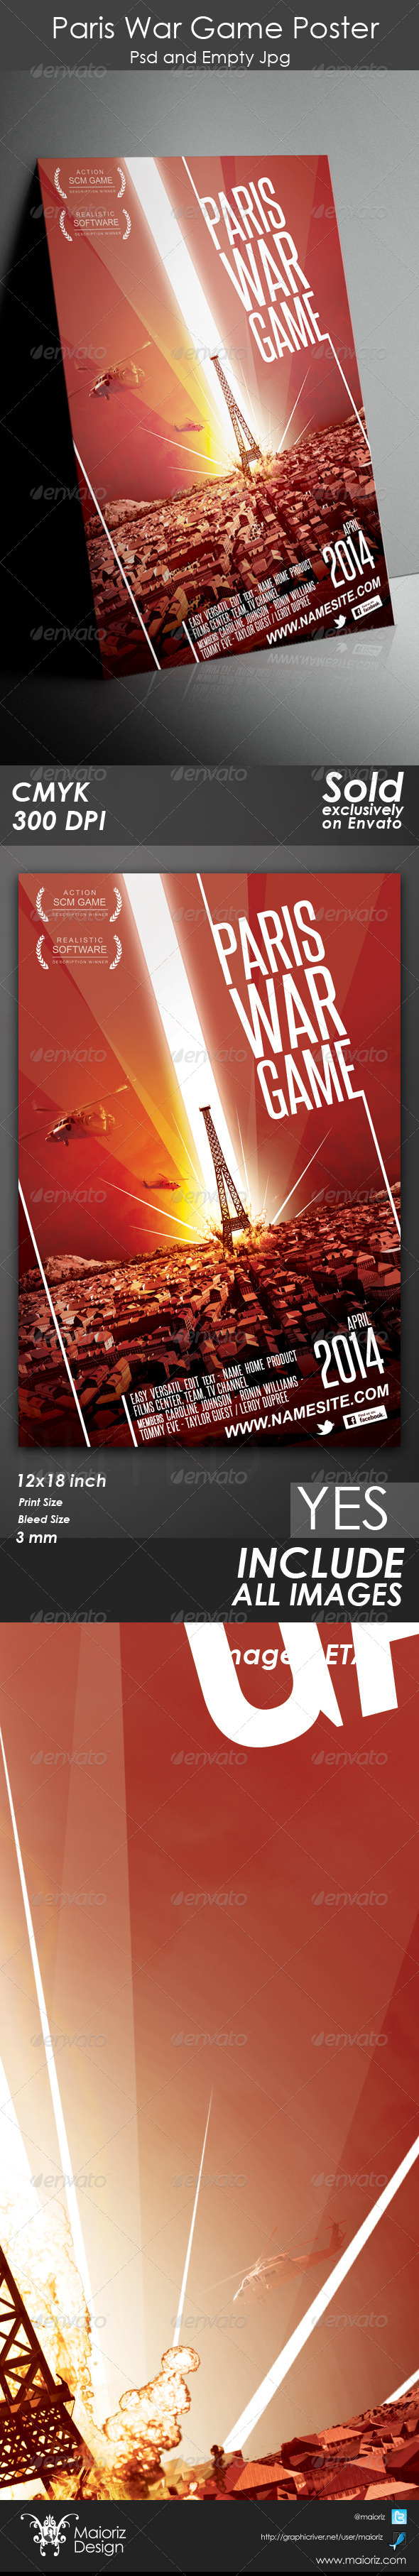 Paris War Game Poster - Miscellaneous Events